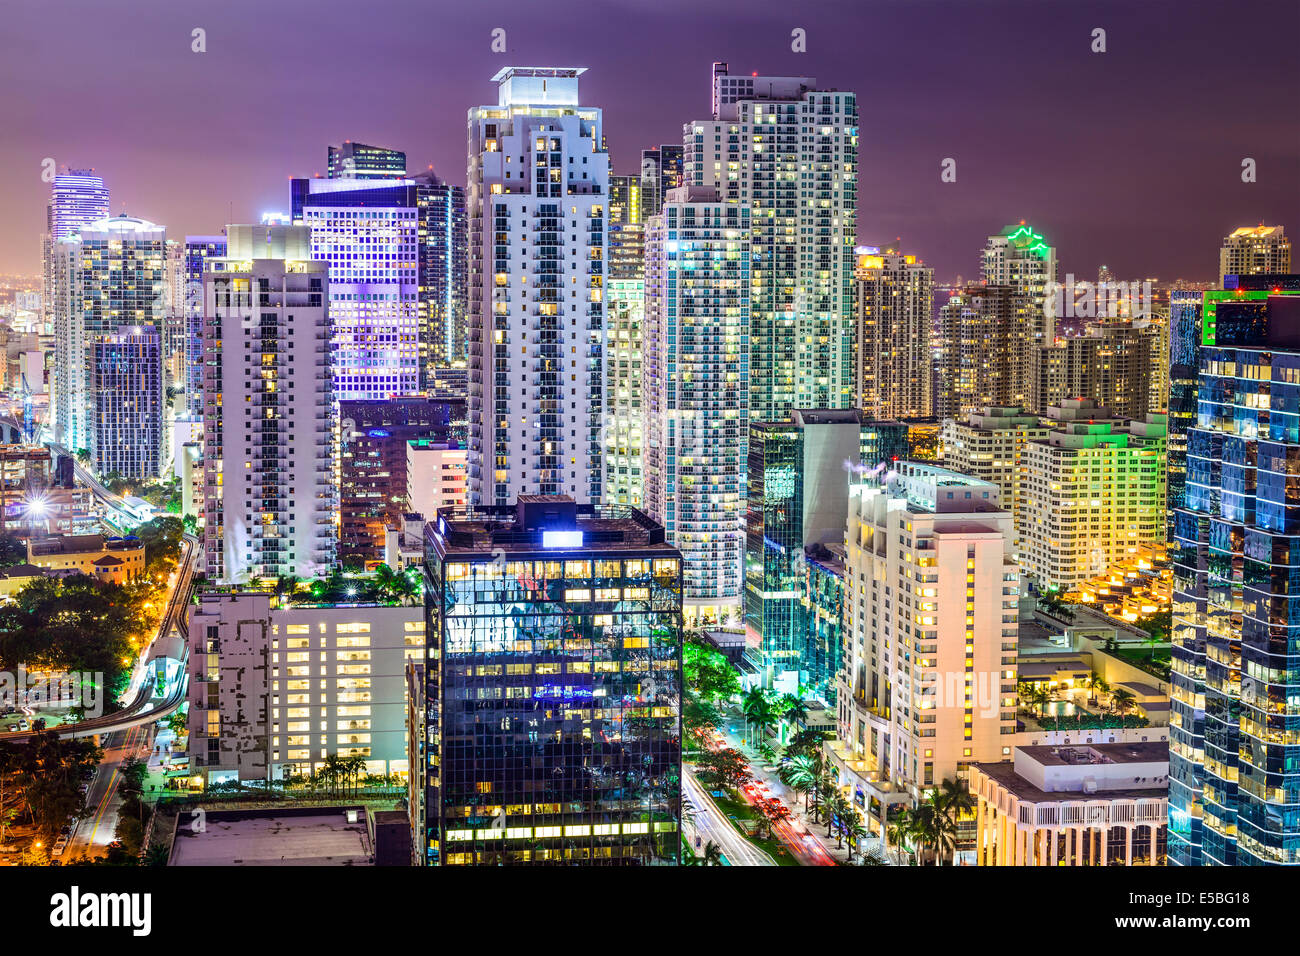 Miami, Florida, USA downtown cityscape. - Stock Image